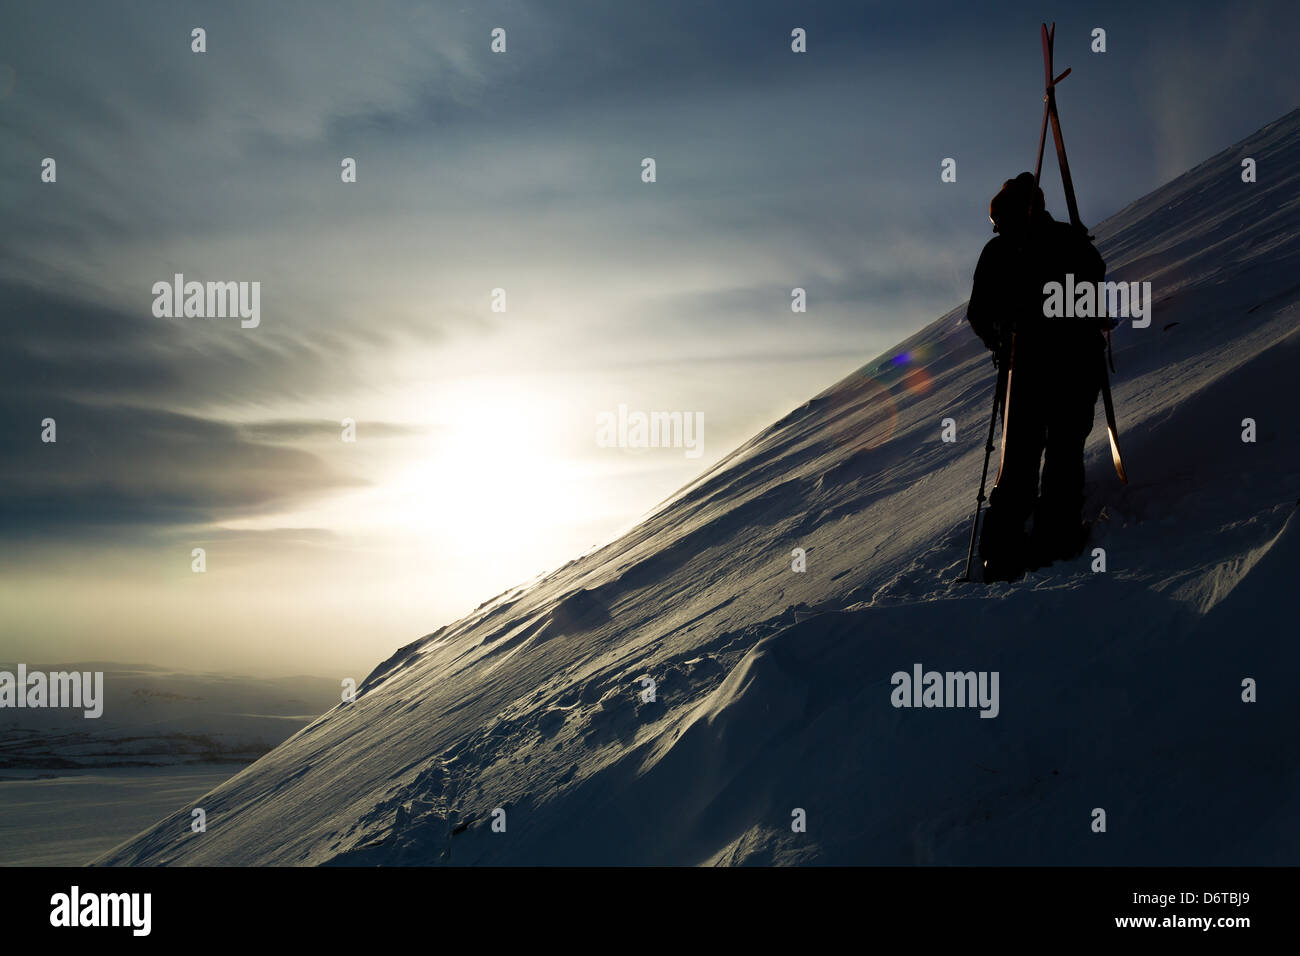 A mountain sun set image, skier or climber looking away from the camera. Dark image with strong contrast. - Stock Image